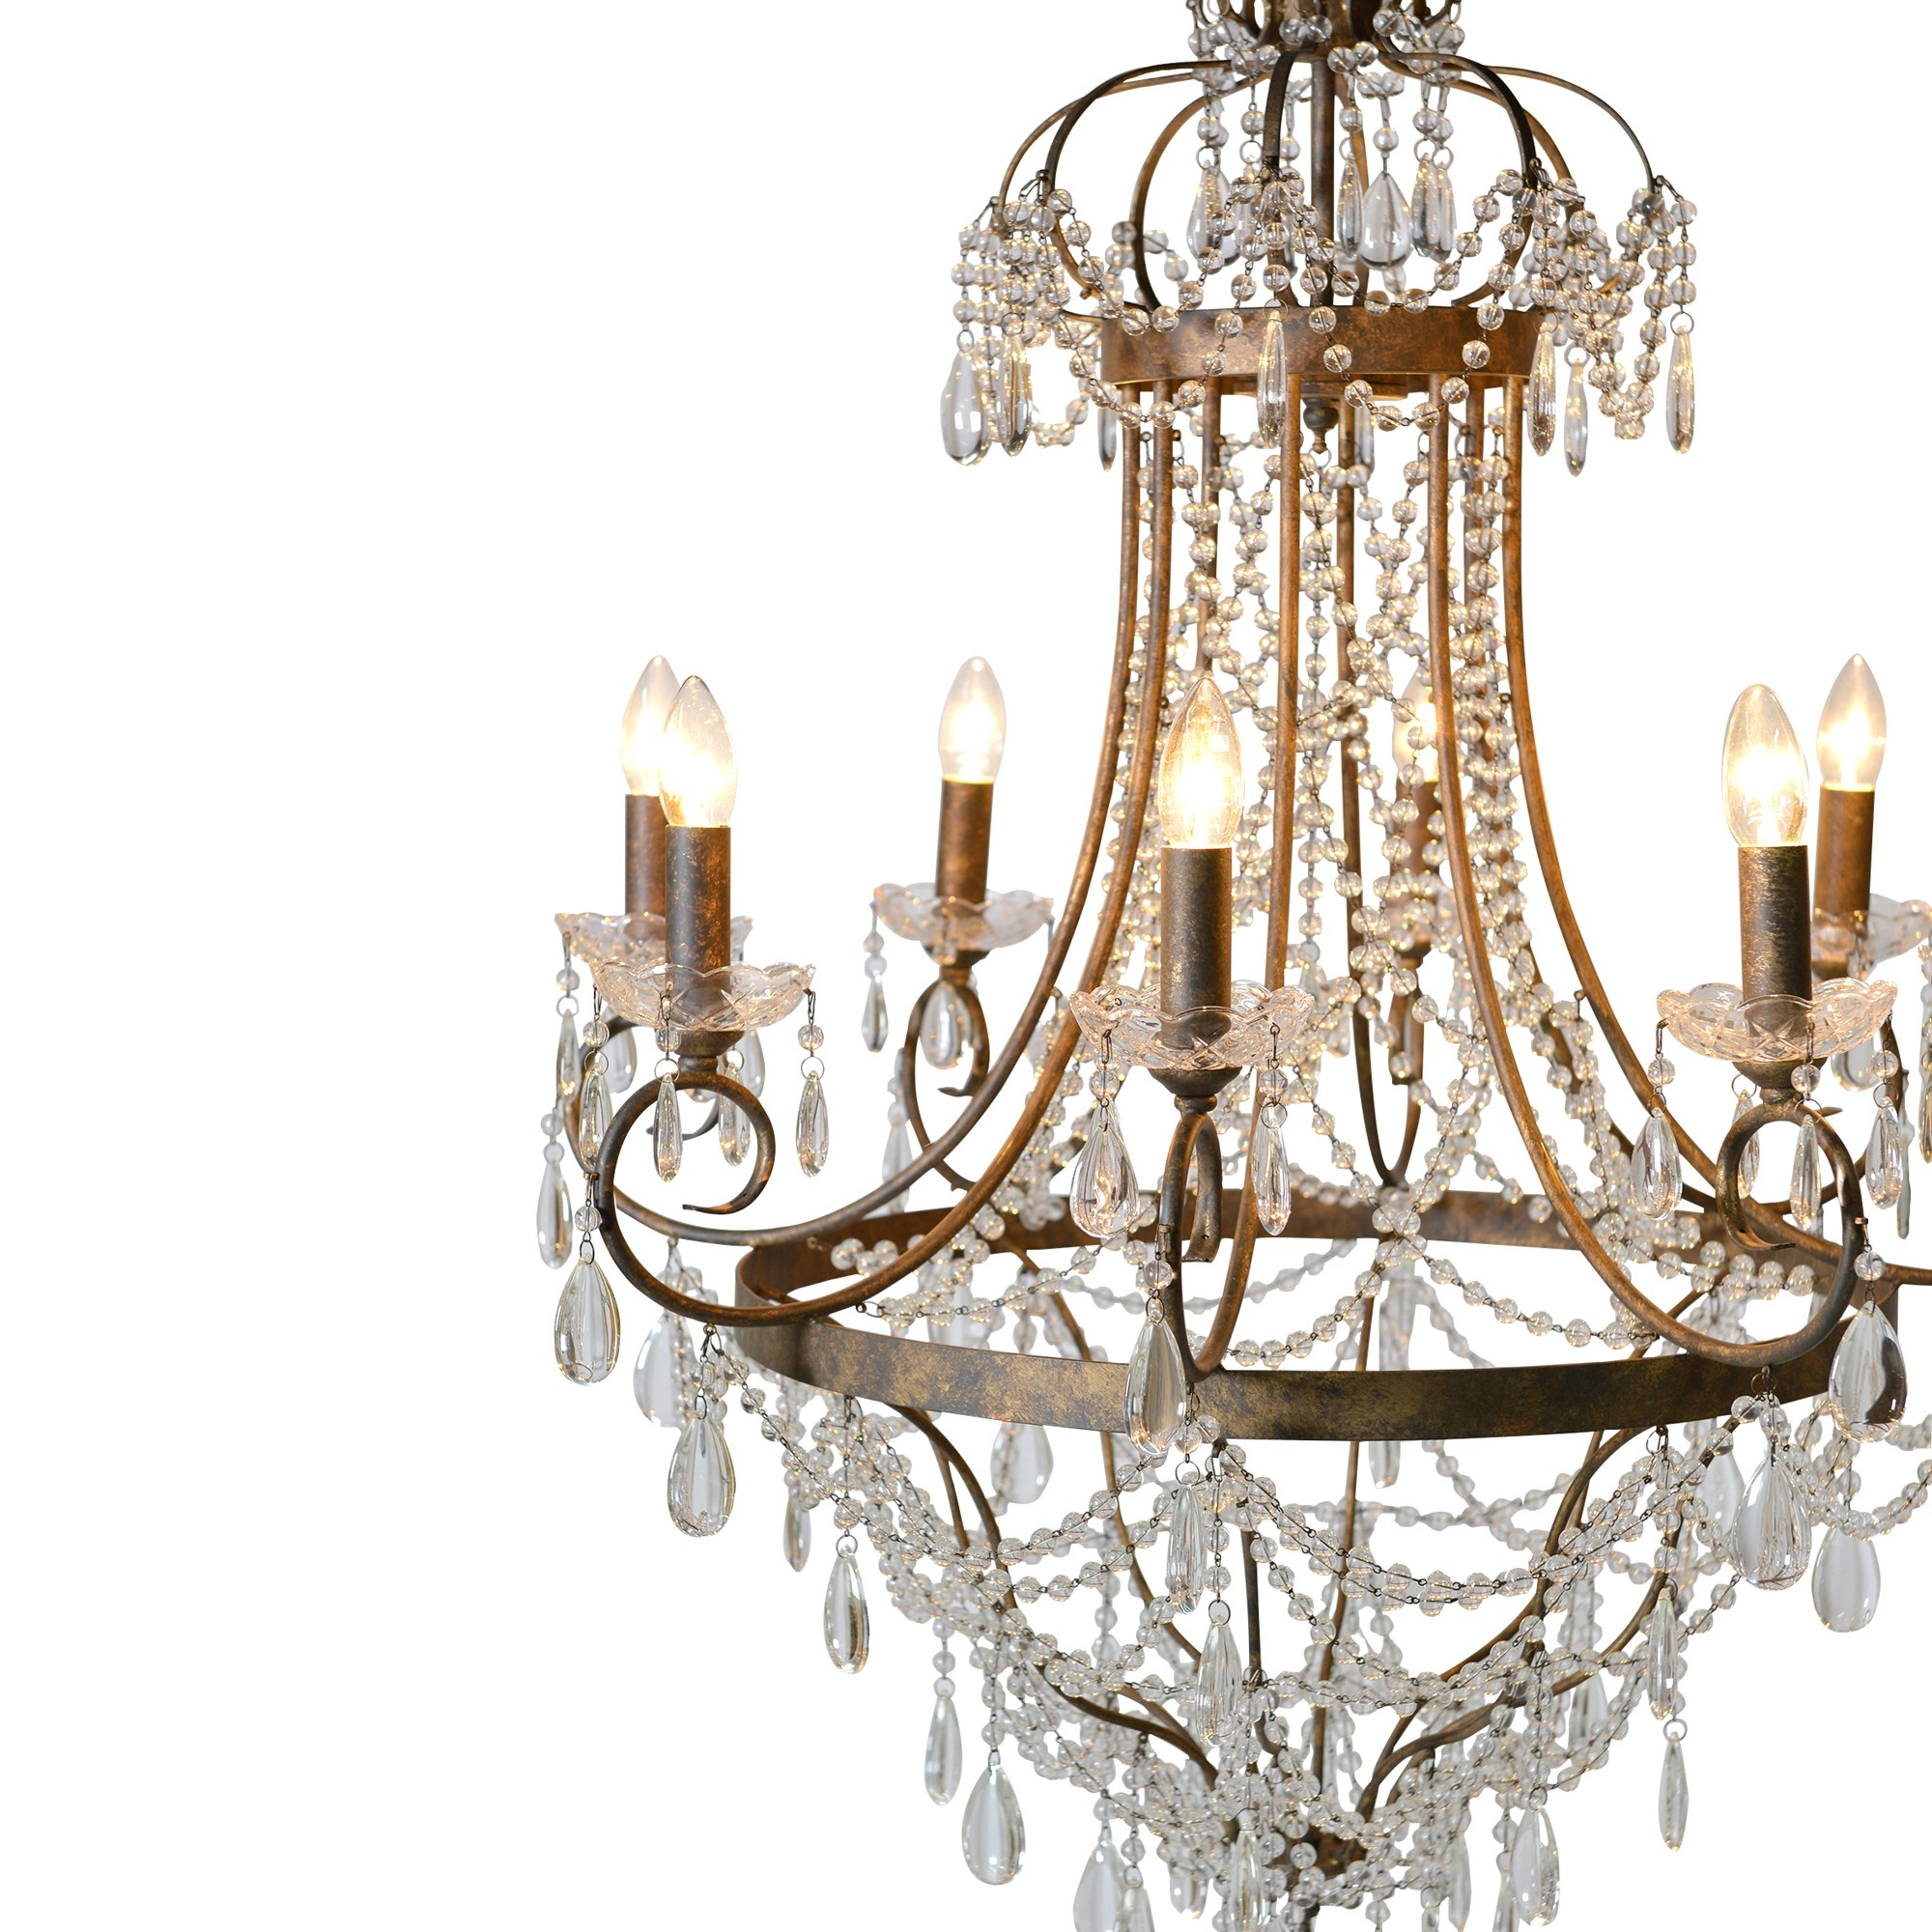 Elegant Glass Droplet Chandelier Chandeliers Lighting Shop Regarding Glass Droplet Chandelier (Image 8 of 15)